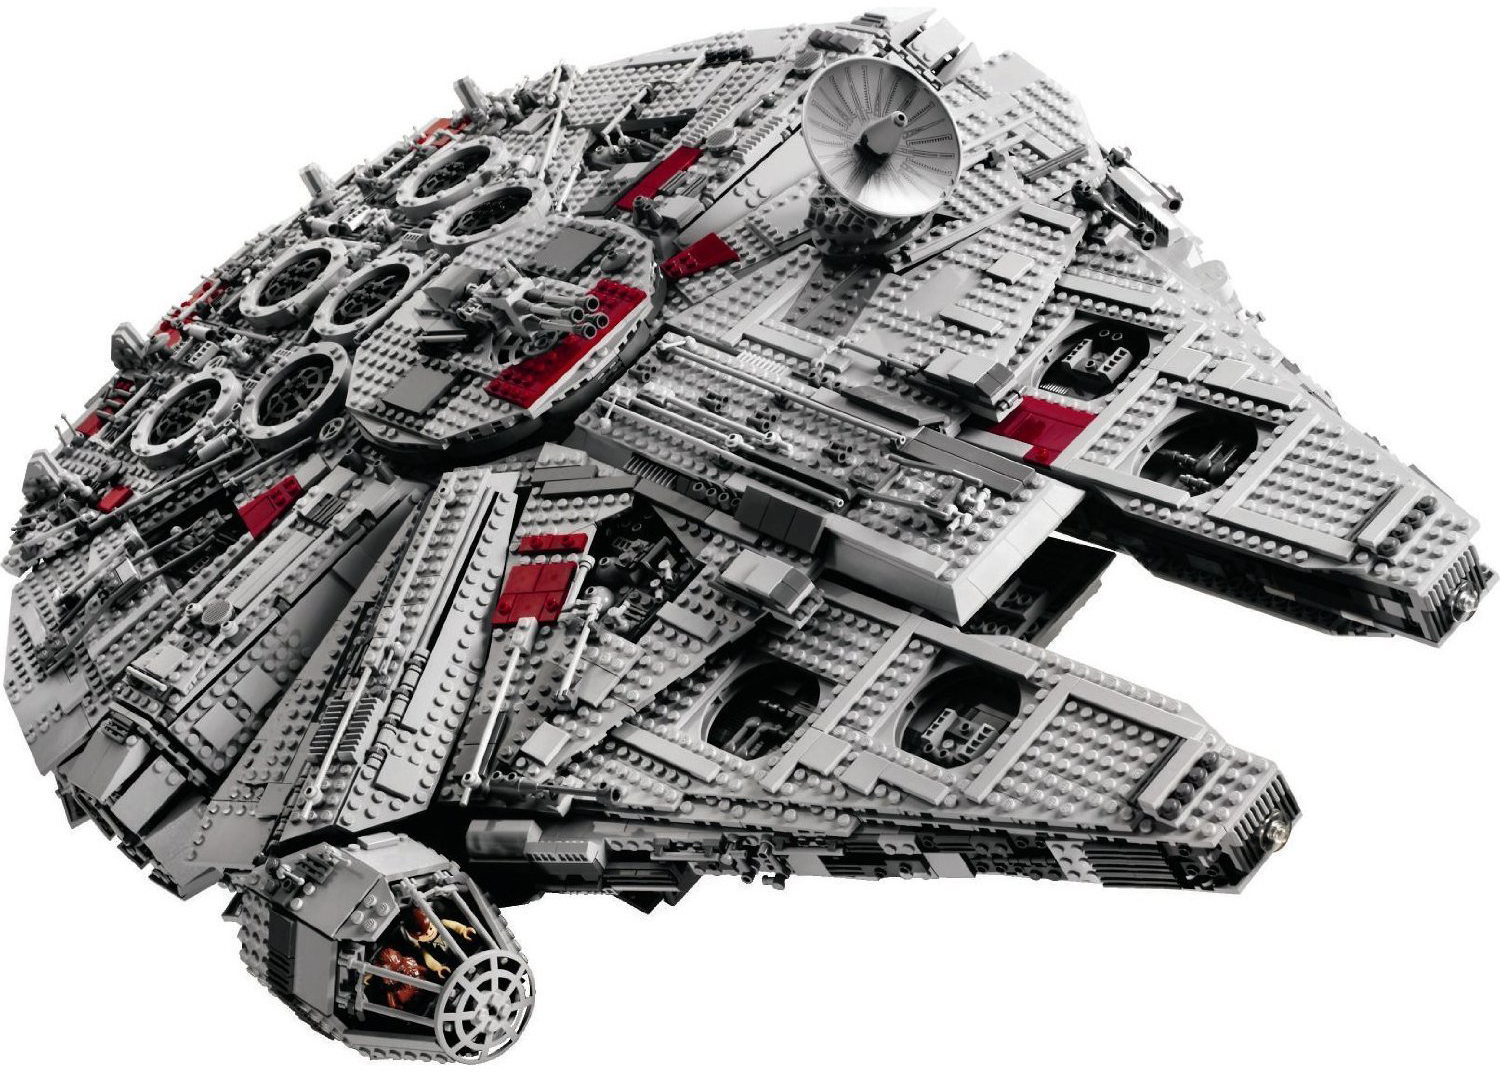 Witness the birth of a Lego Millennium Falcon.